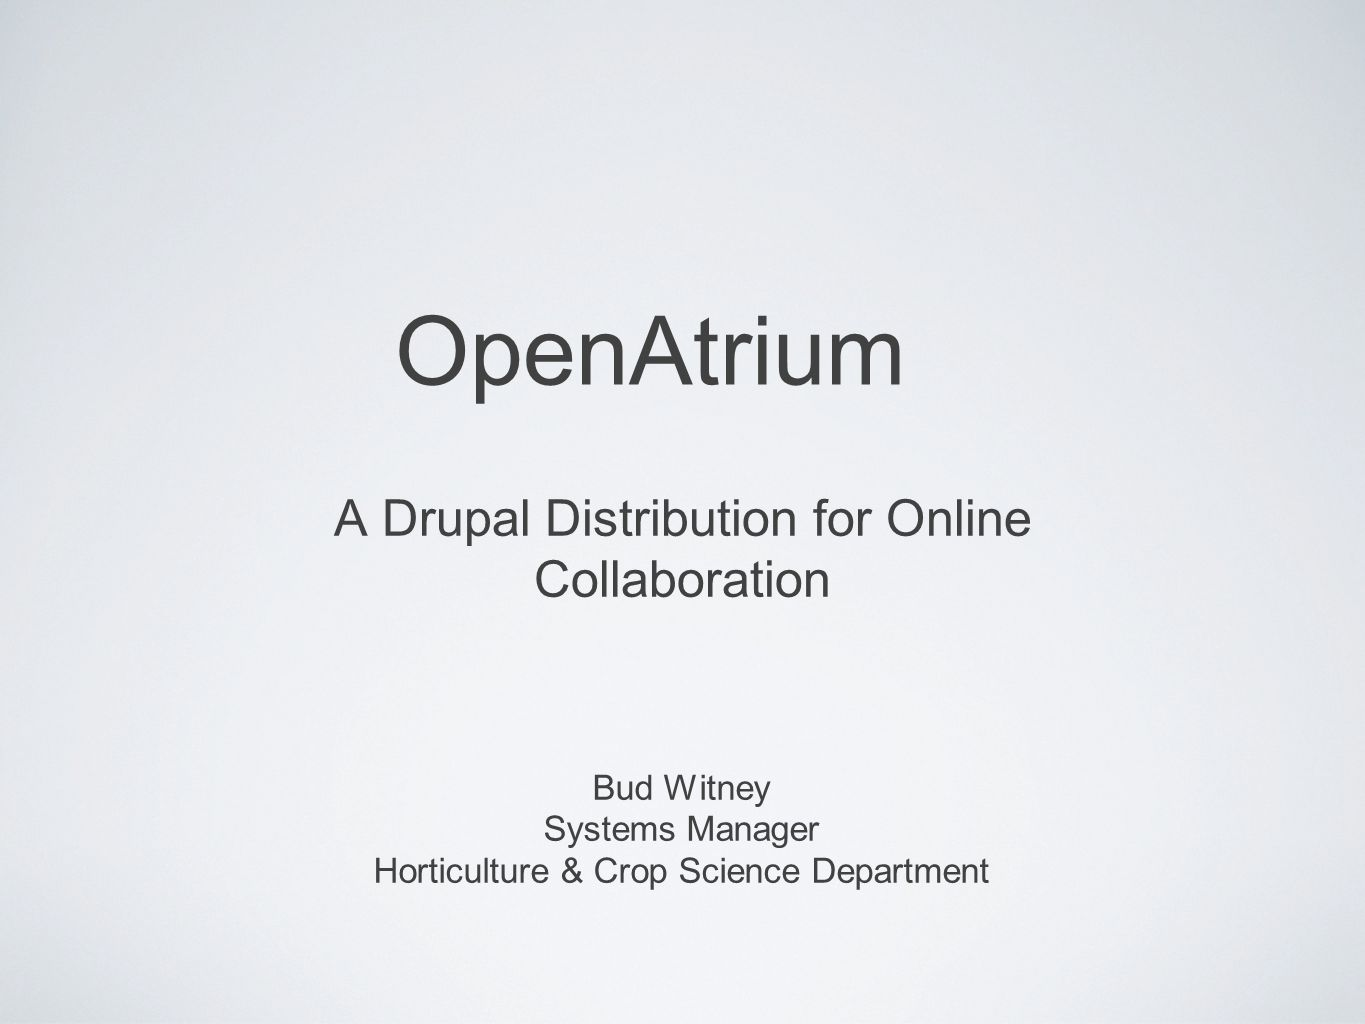 Open Atrium is a platform for building team portals that can be extended to meet highly custom knowledge management needs for large organizations intranets and extranets.